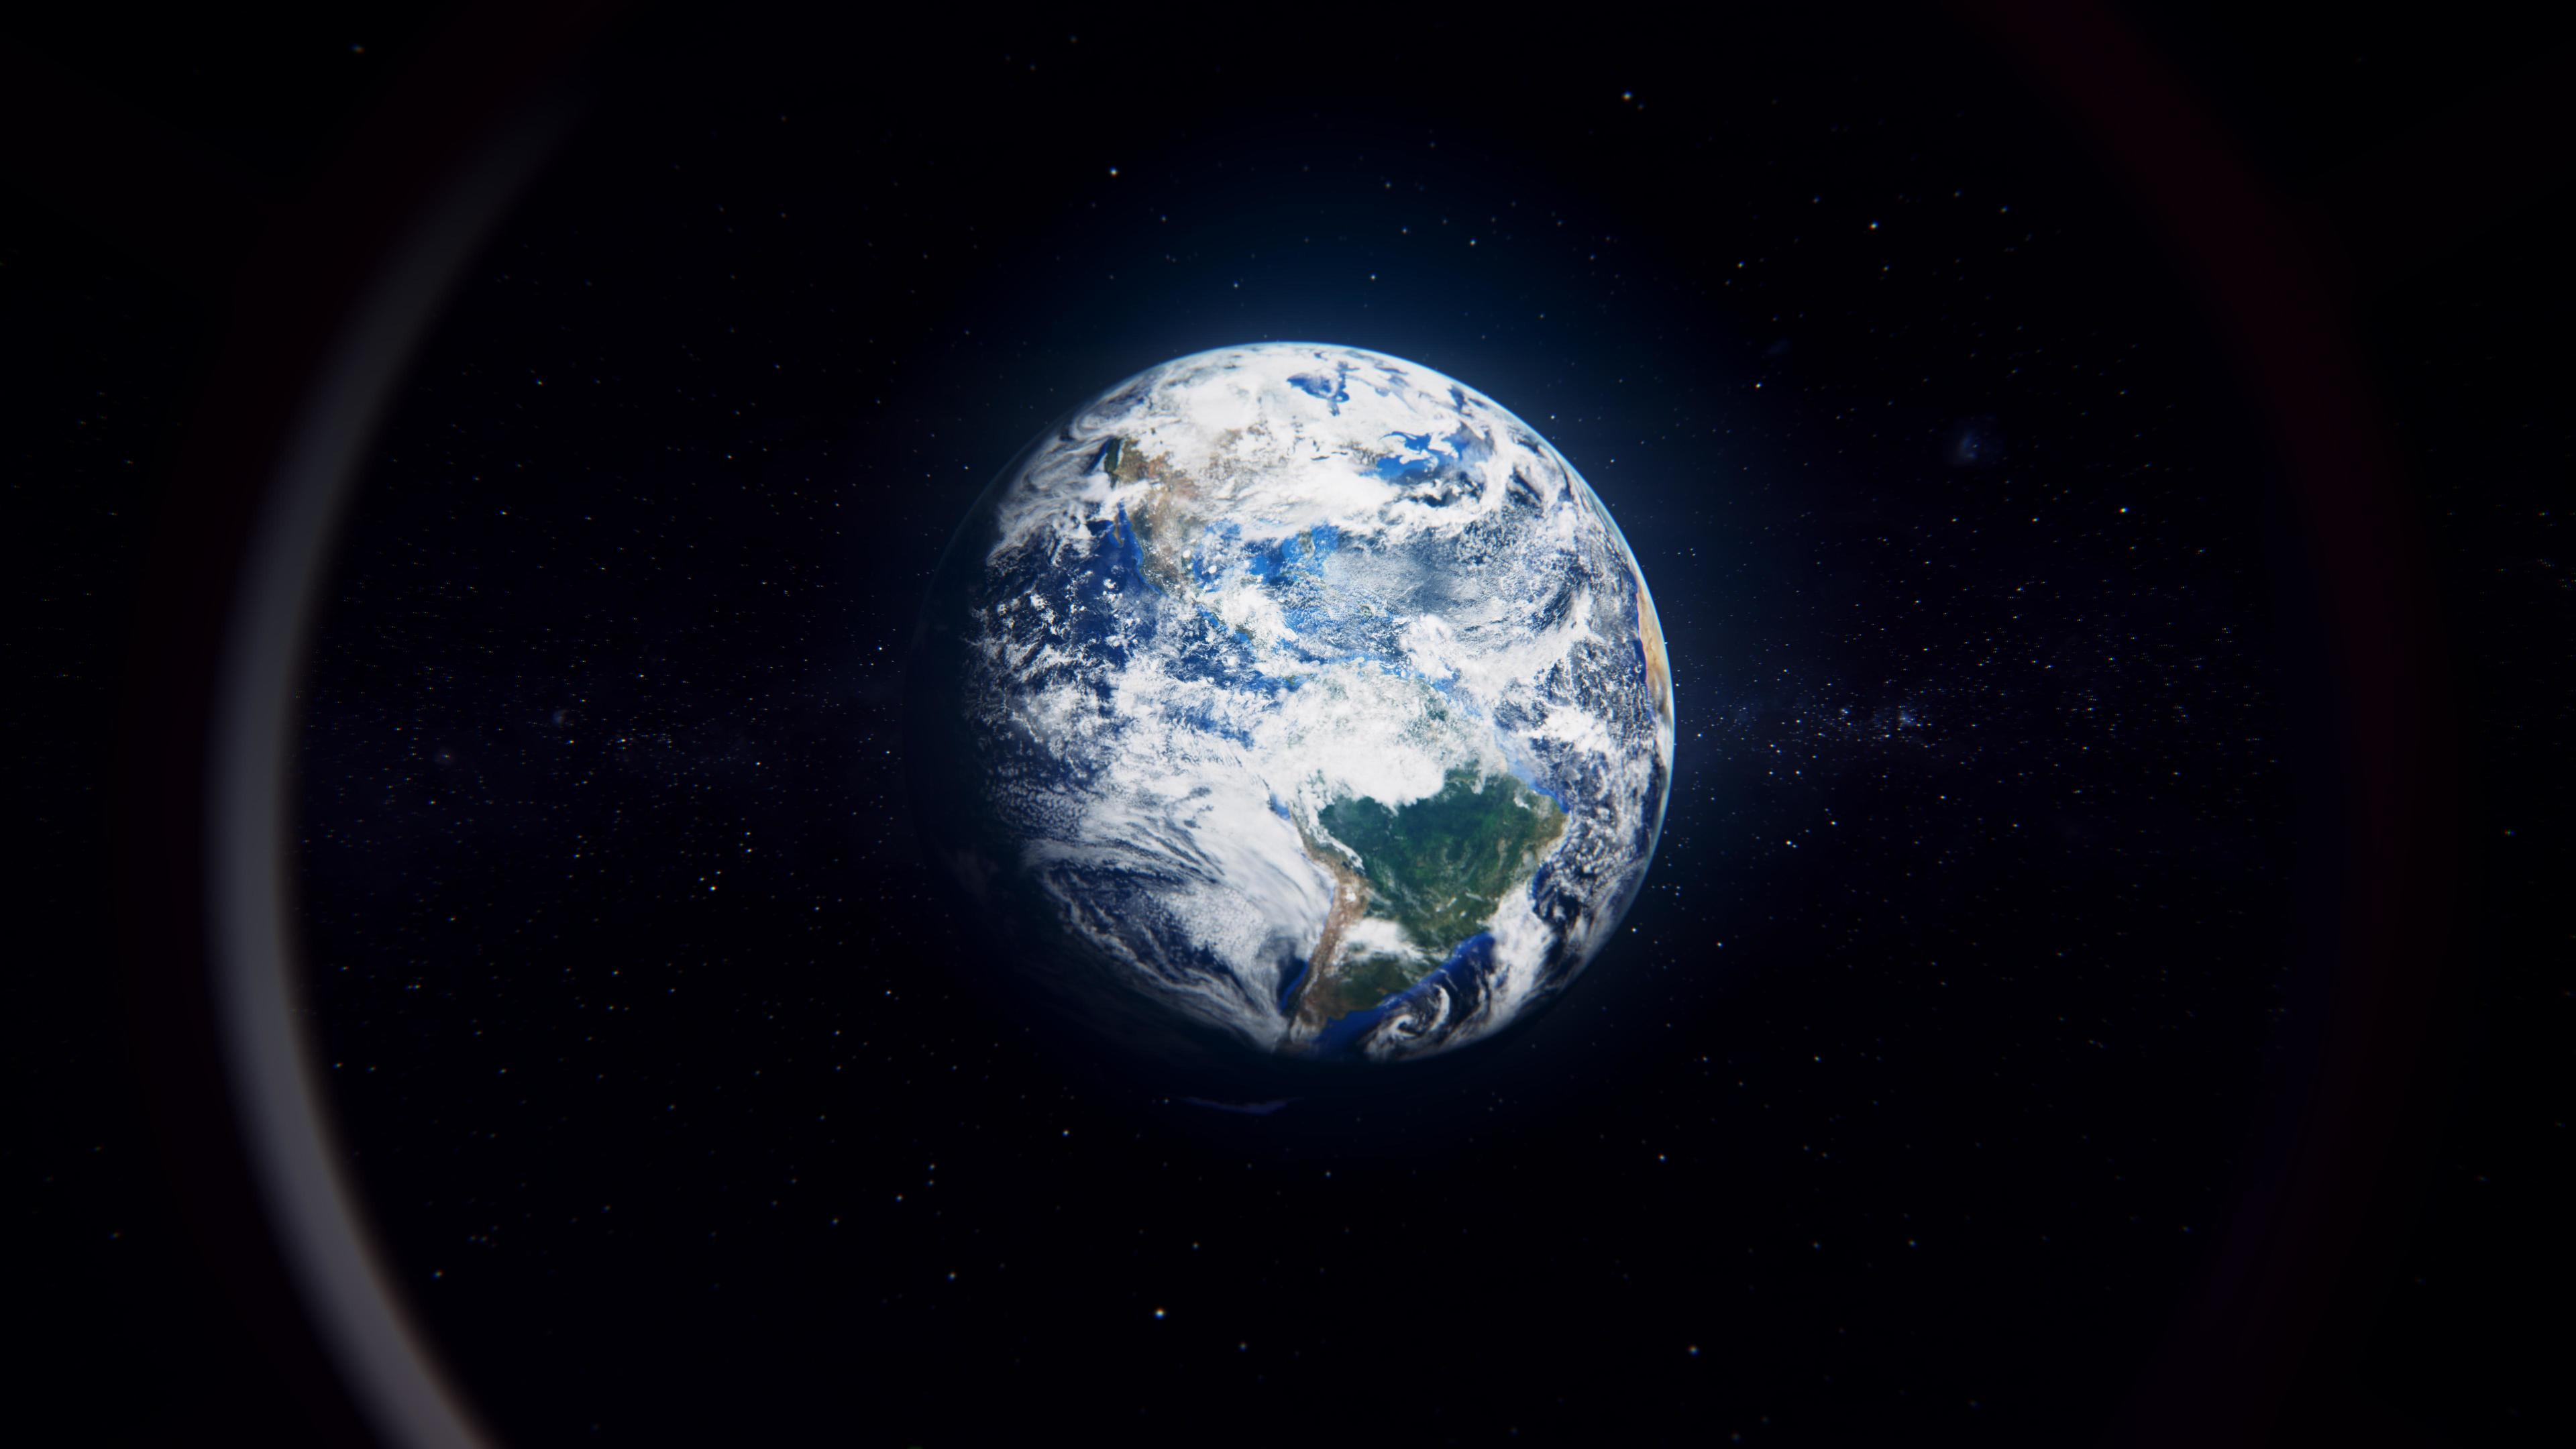 Wallpaper 4k Earth View From Space 4k 4k Wallpapers 5k